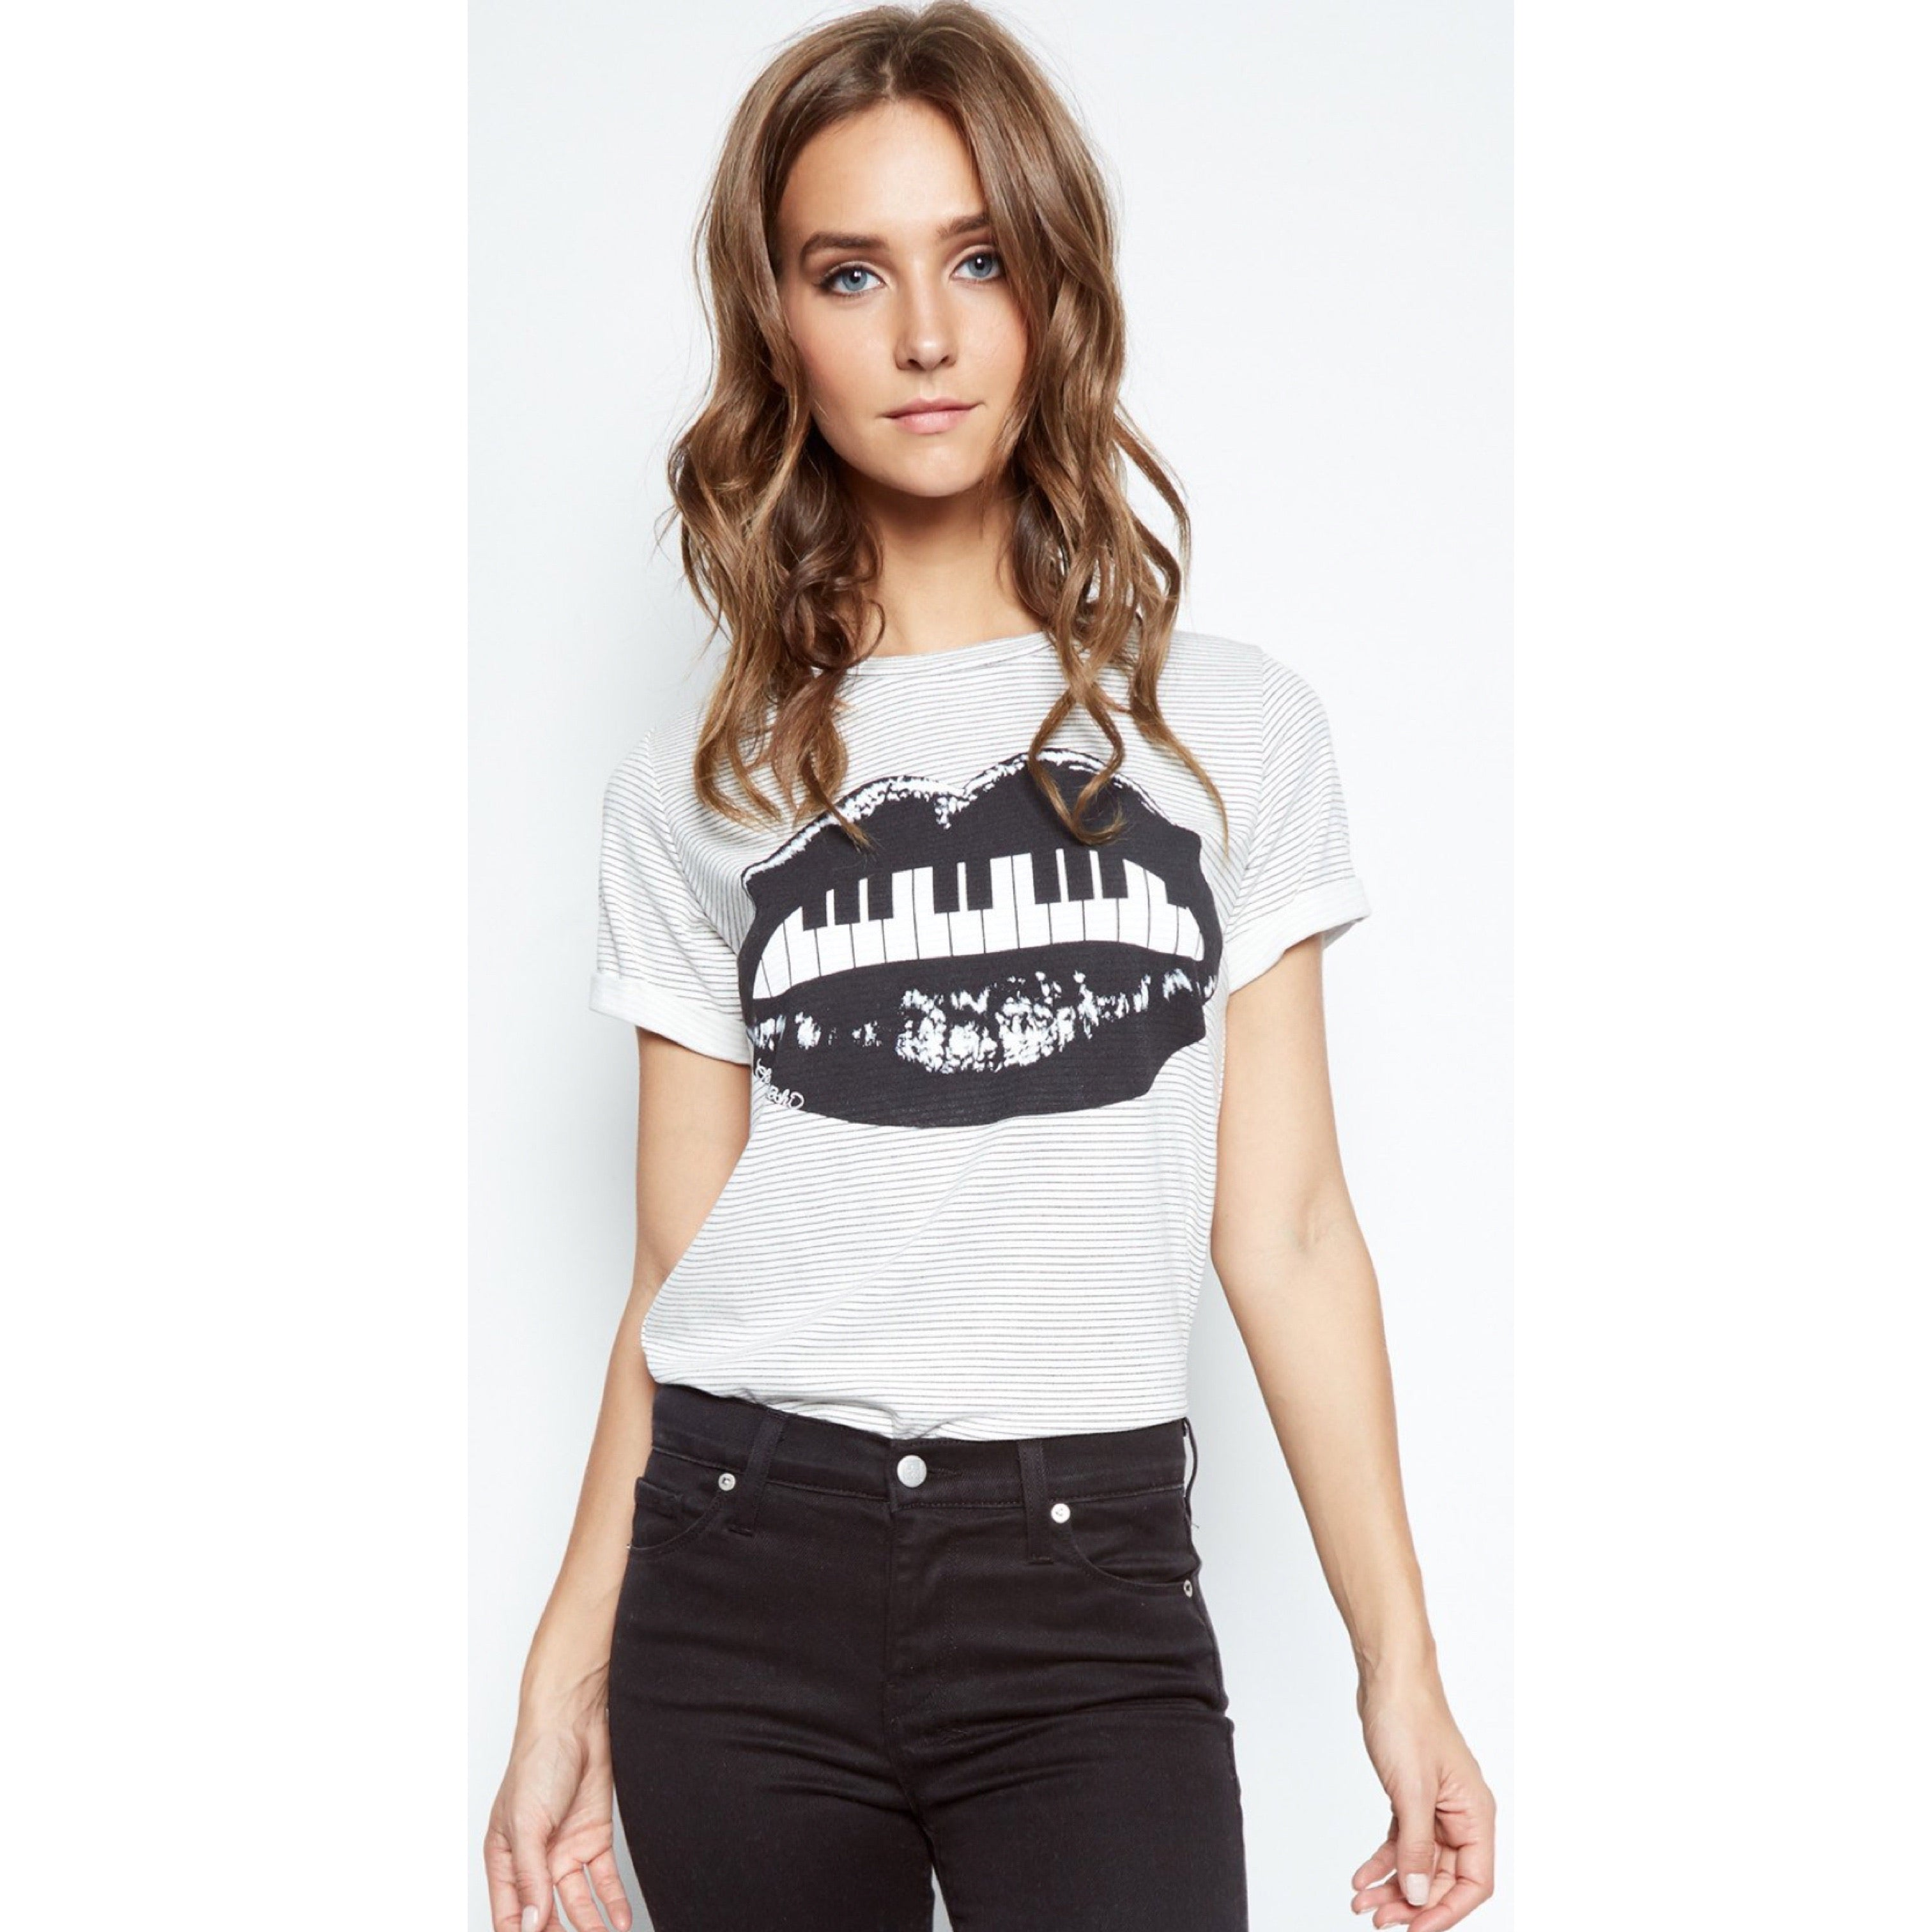 Limp Short Sleeve Piano Mouth Stripes Tee in White/Black